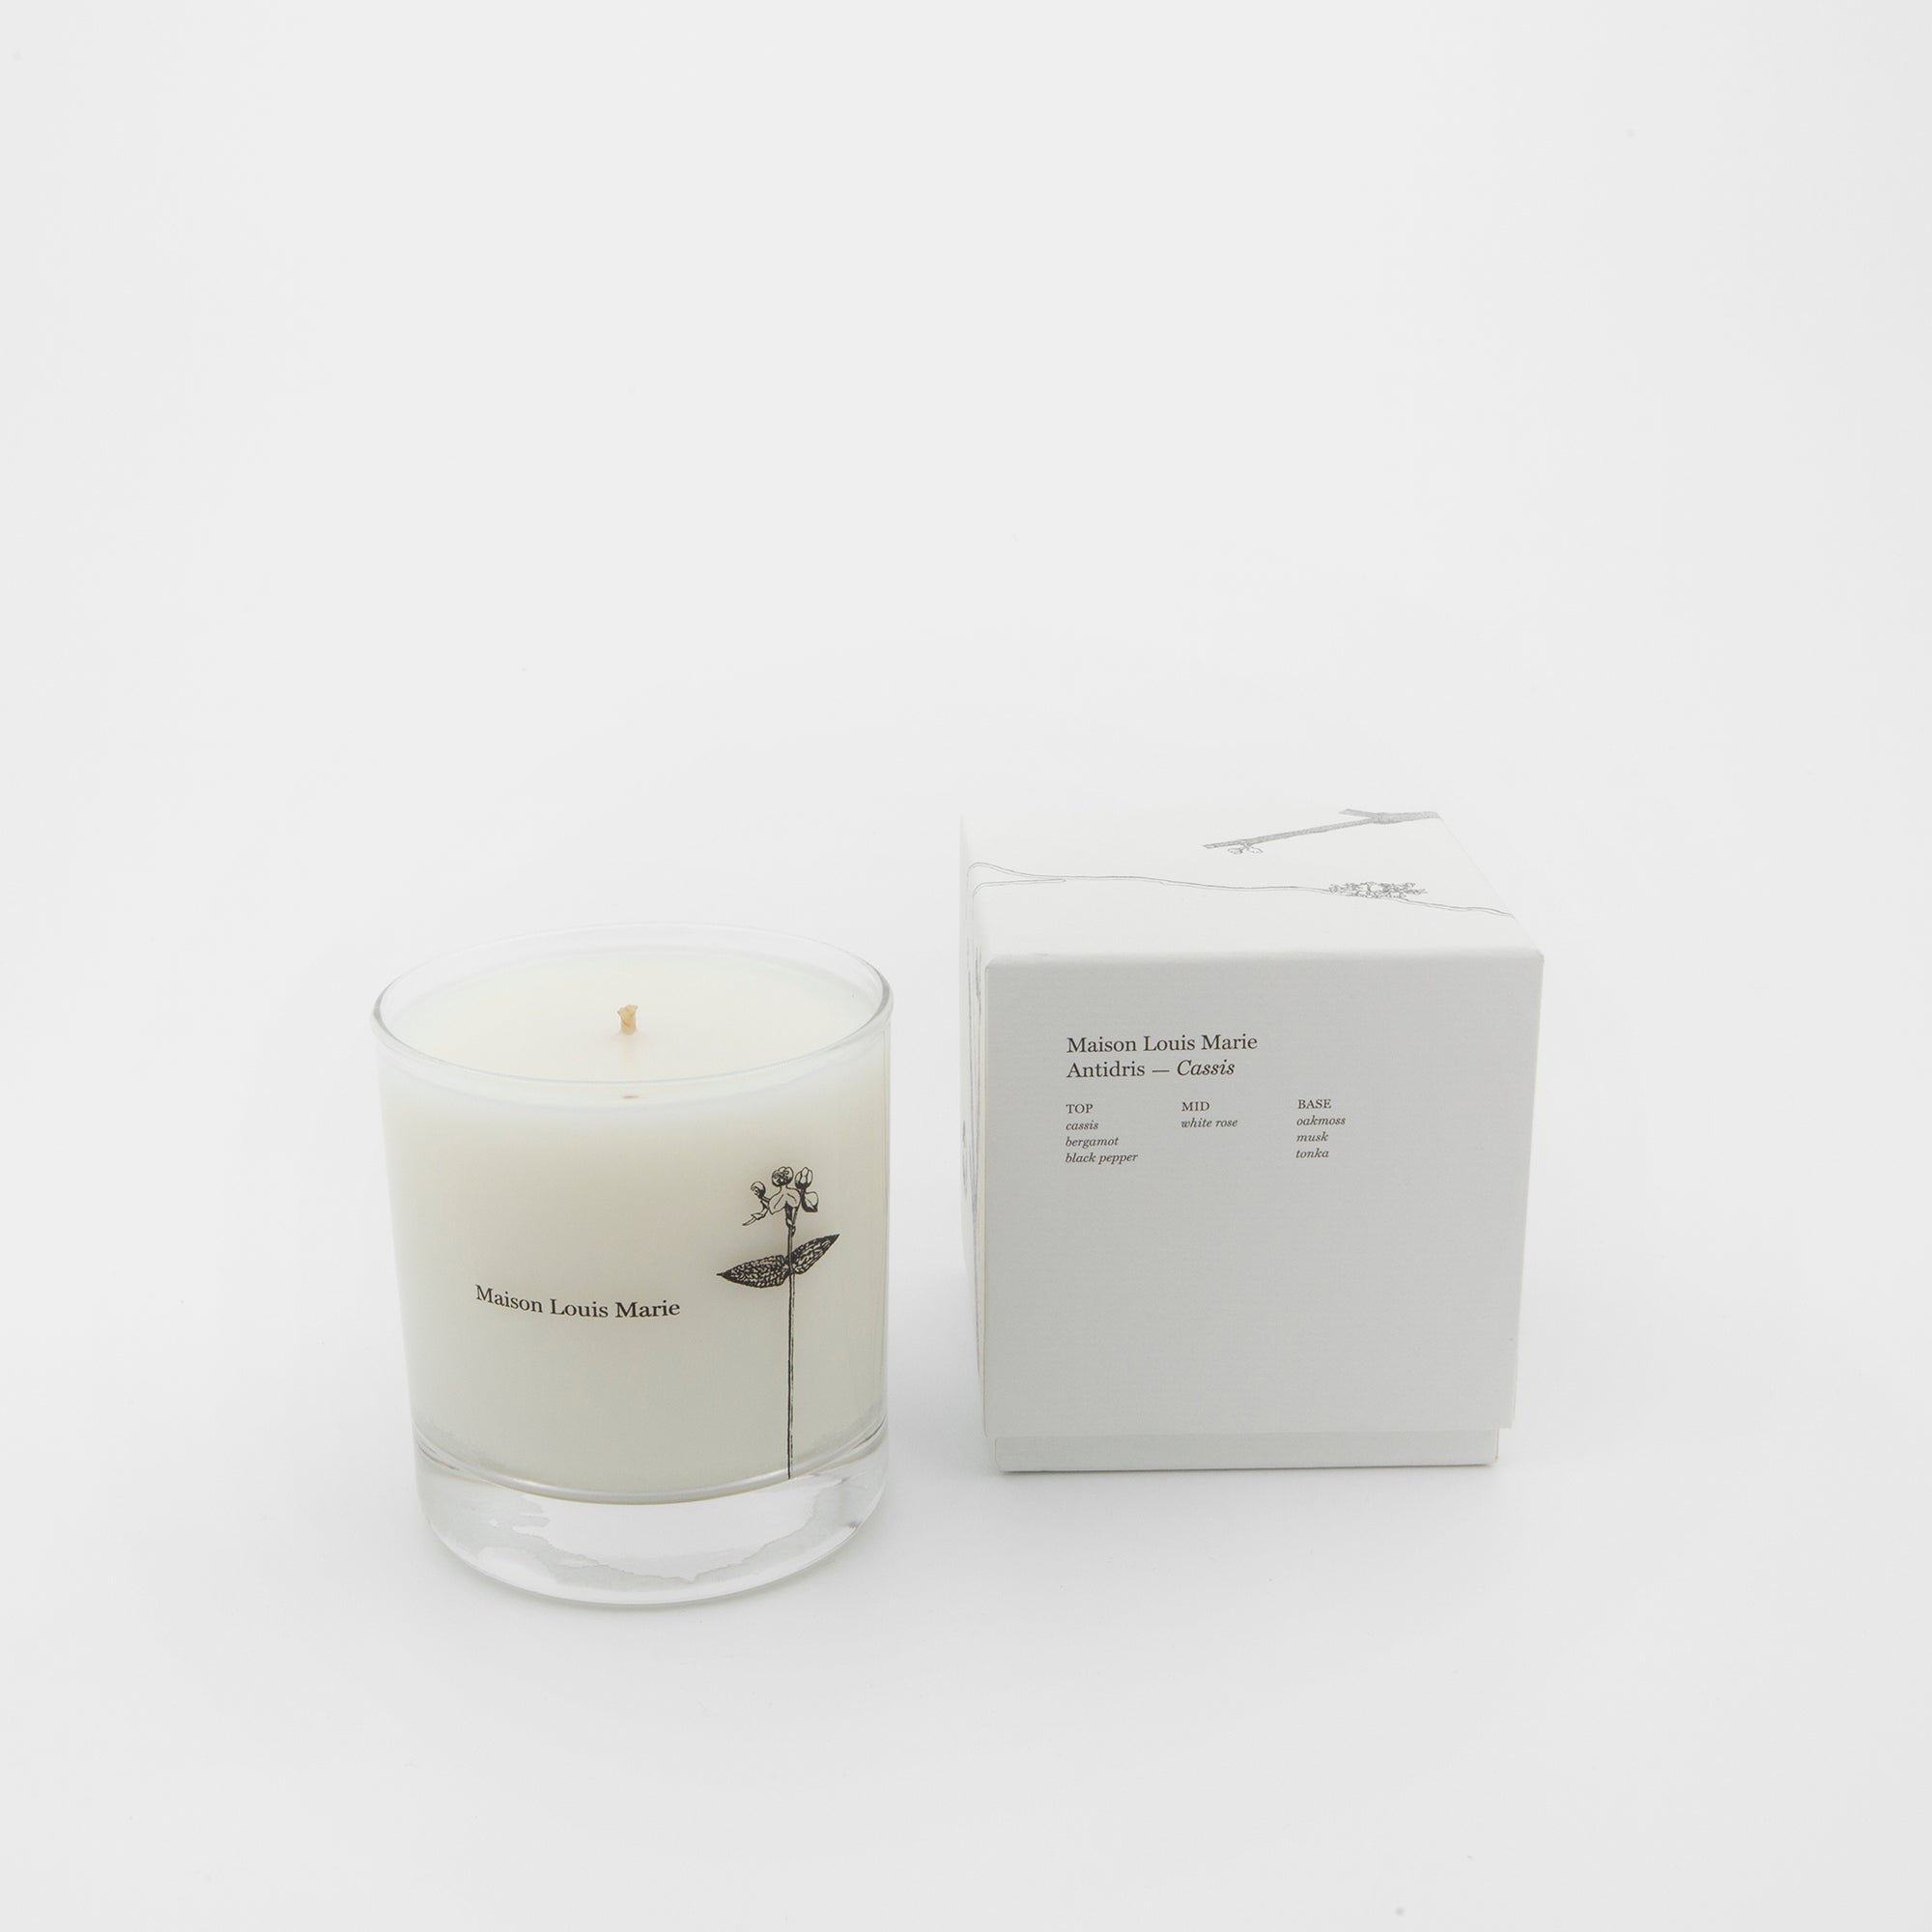 Antidris - Cassis Candle